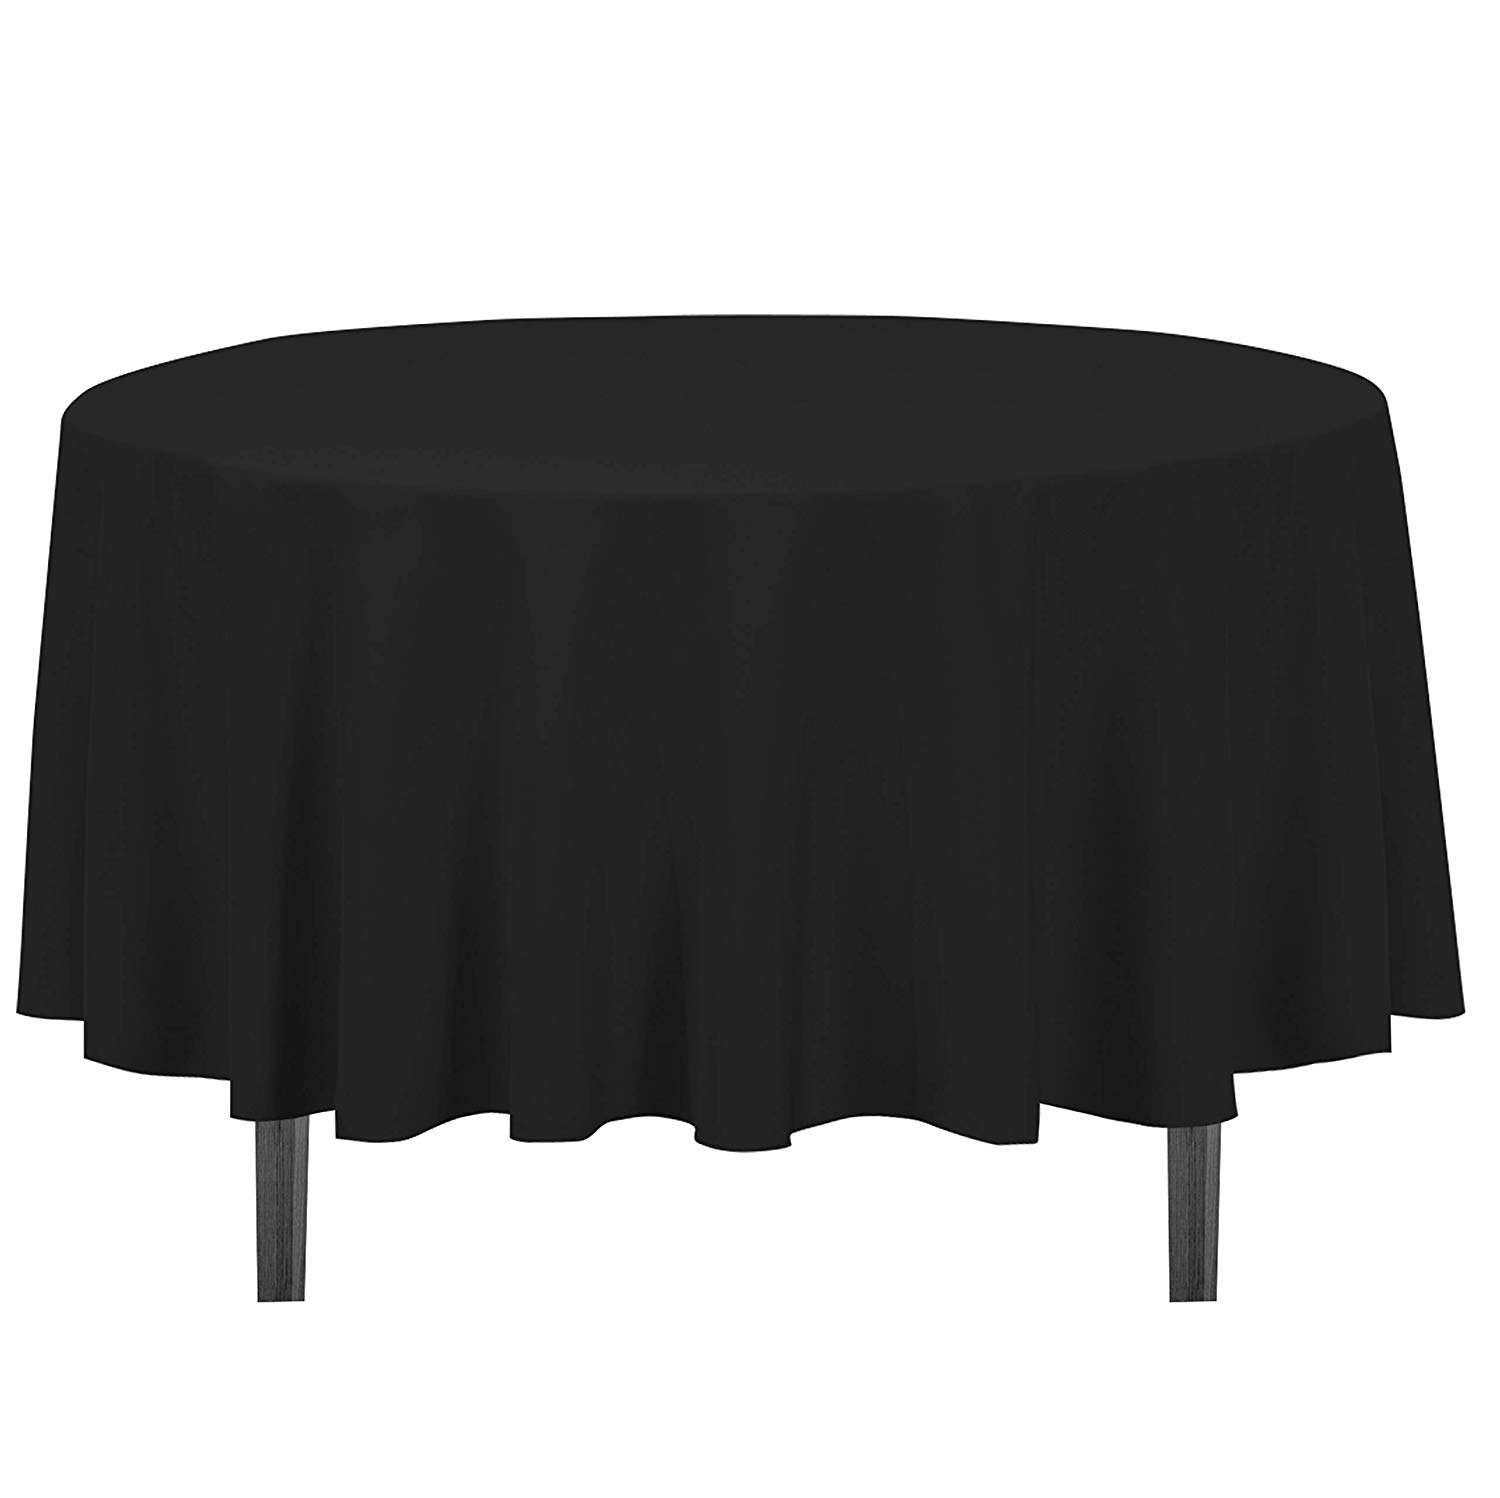 Black 90″ Round Polyester Tablecloths - 6 available | Rent for $5 each